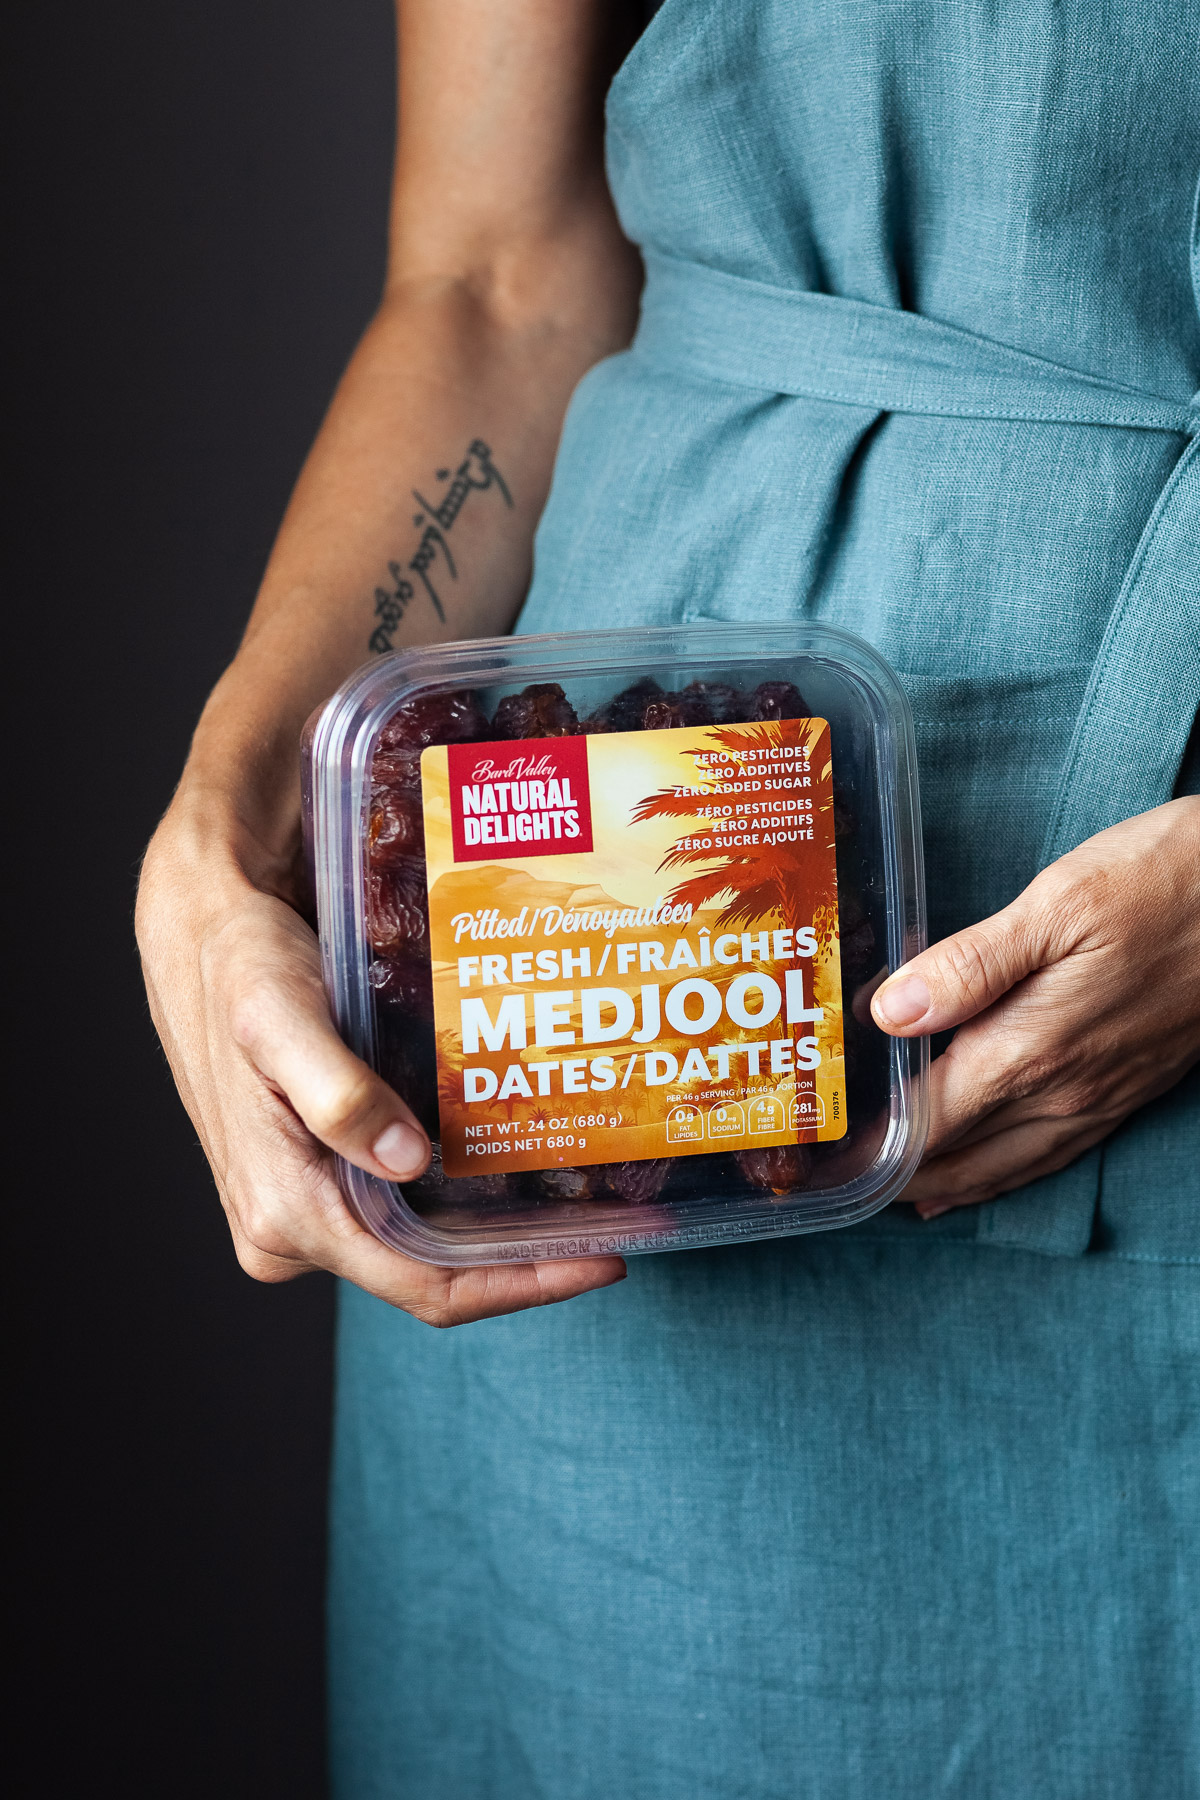 A person in a blue apron holding a box of Medjool dates.